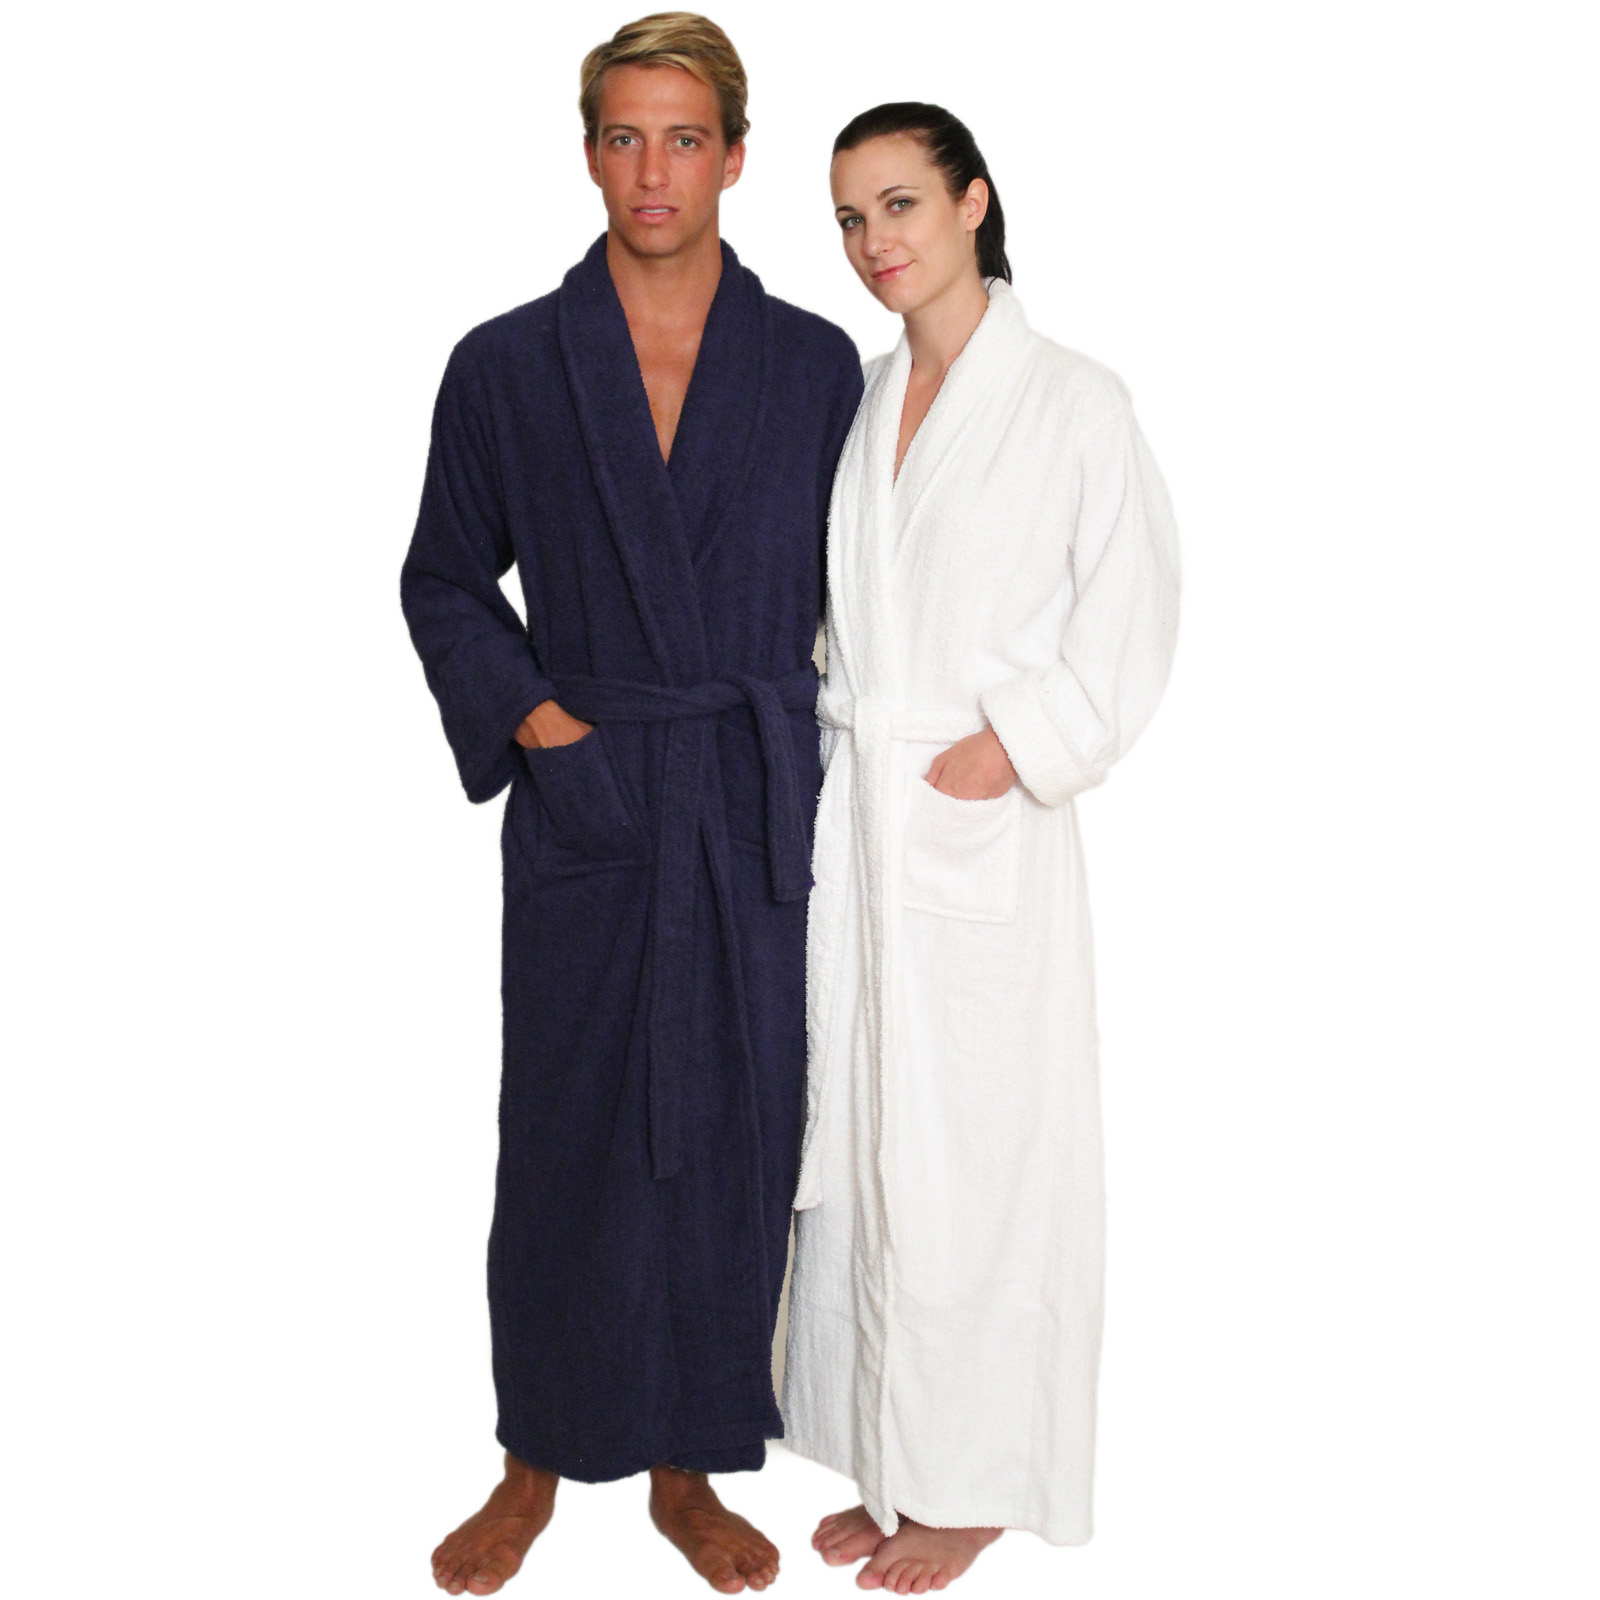 Full Length Terry Cloth Robe Long Sleeves 100% cotton $49.99 Colors: Navy-S/M White-S/M. Sizes:       Made from very fine yarn in medium weight terry cloth. This full length terry cloth robe makes ffor a